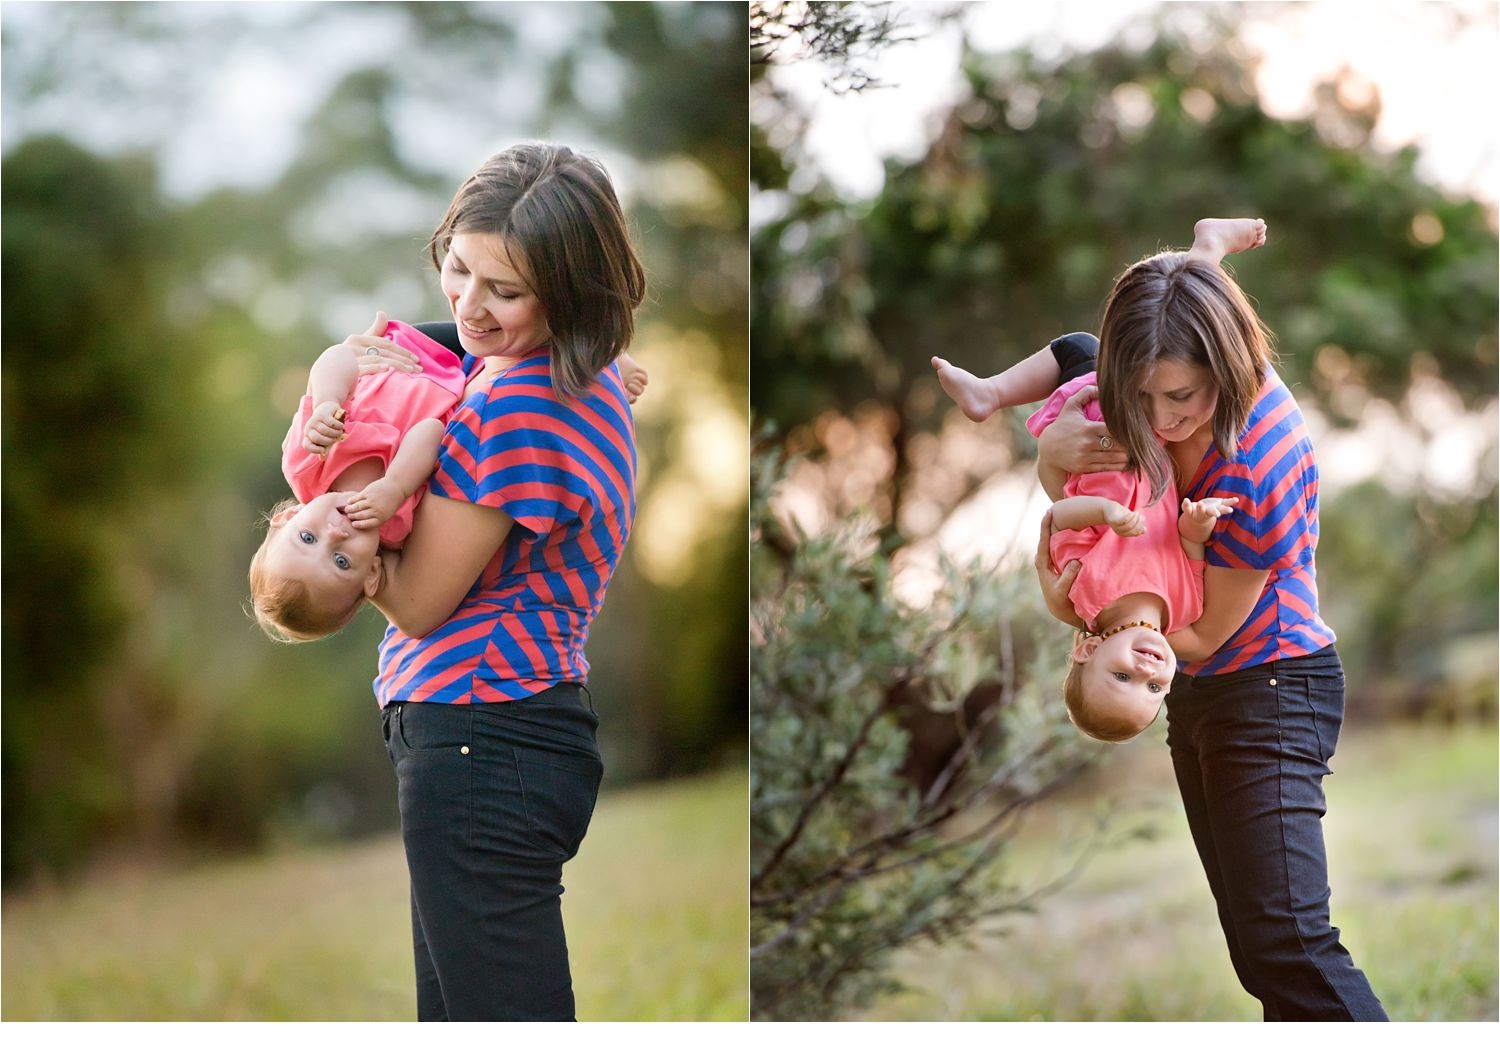 Bec-Stewart-Family-and-children-Lifestyle-Photographer-city-of-casey-melbourne-1.jpg